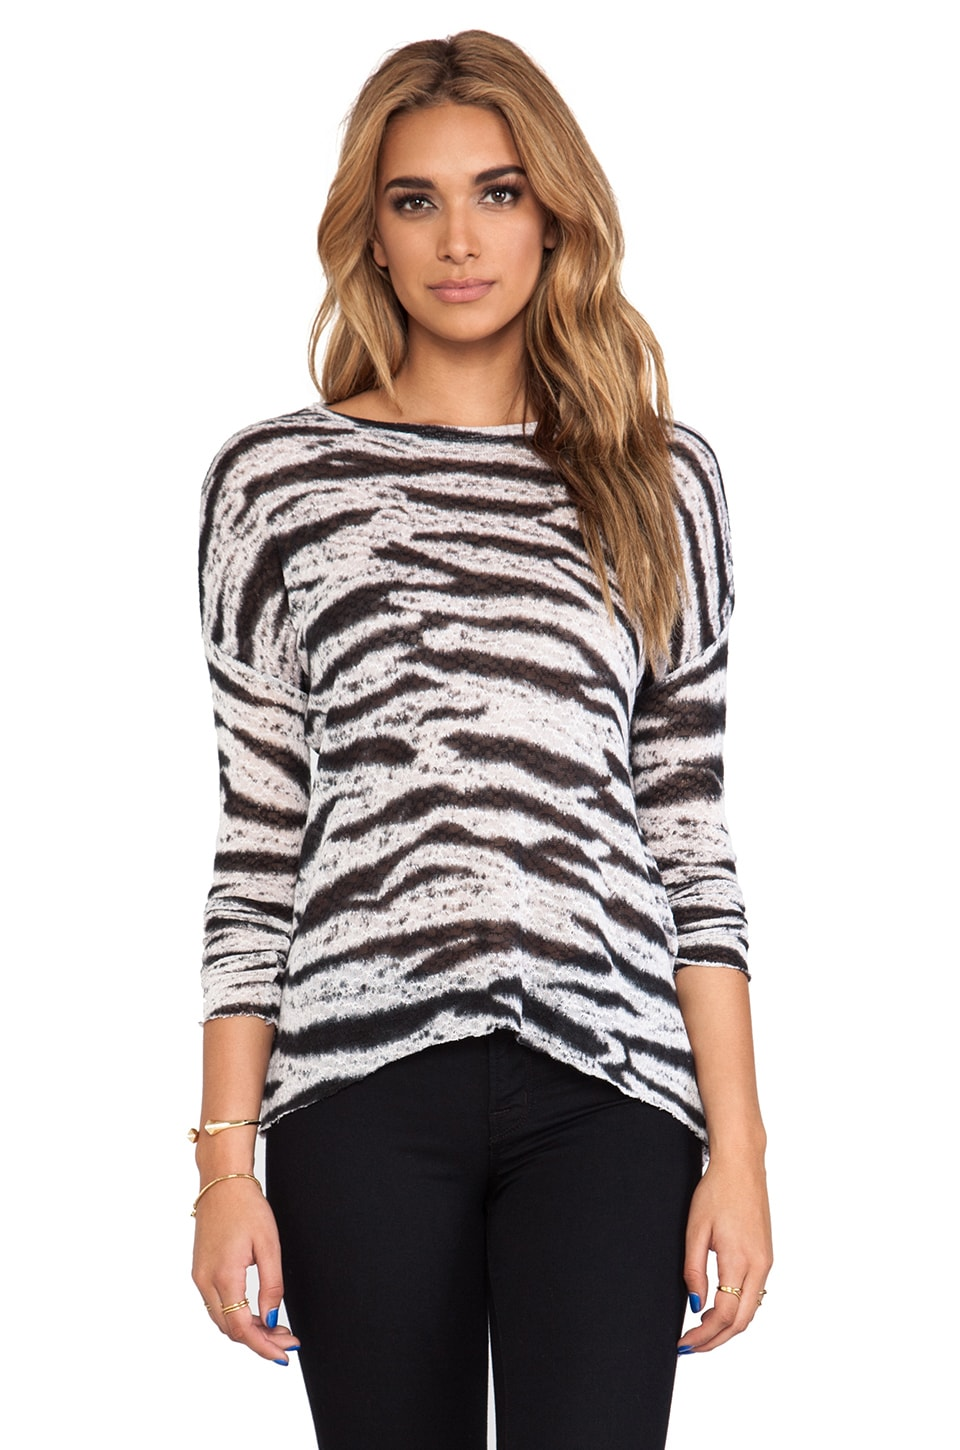 Generation Love Judy Tie Dye Long Sleeve Top in Black & White